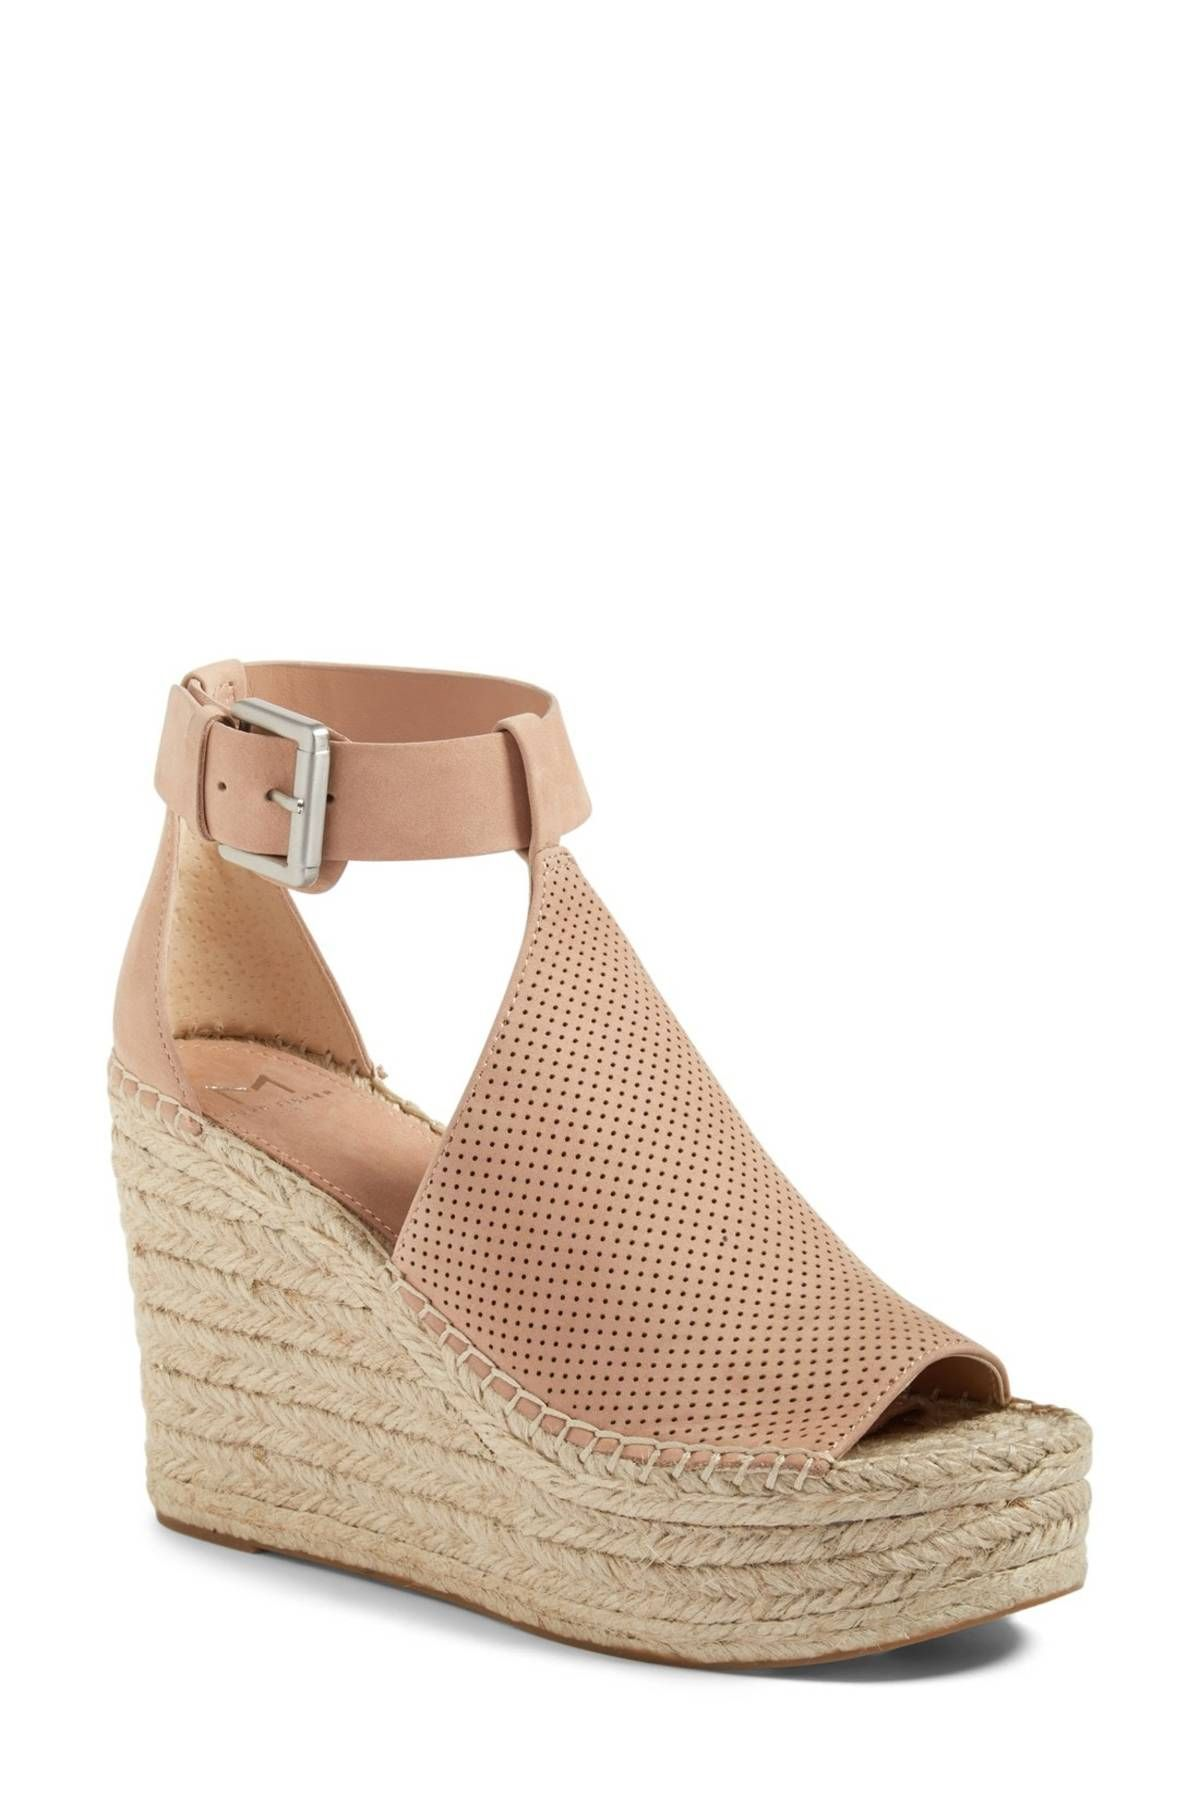 1d310d5f75 Image of Marc Fisher LTD Annie Perforated Espadrille Platform Wedge (Women)